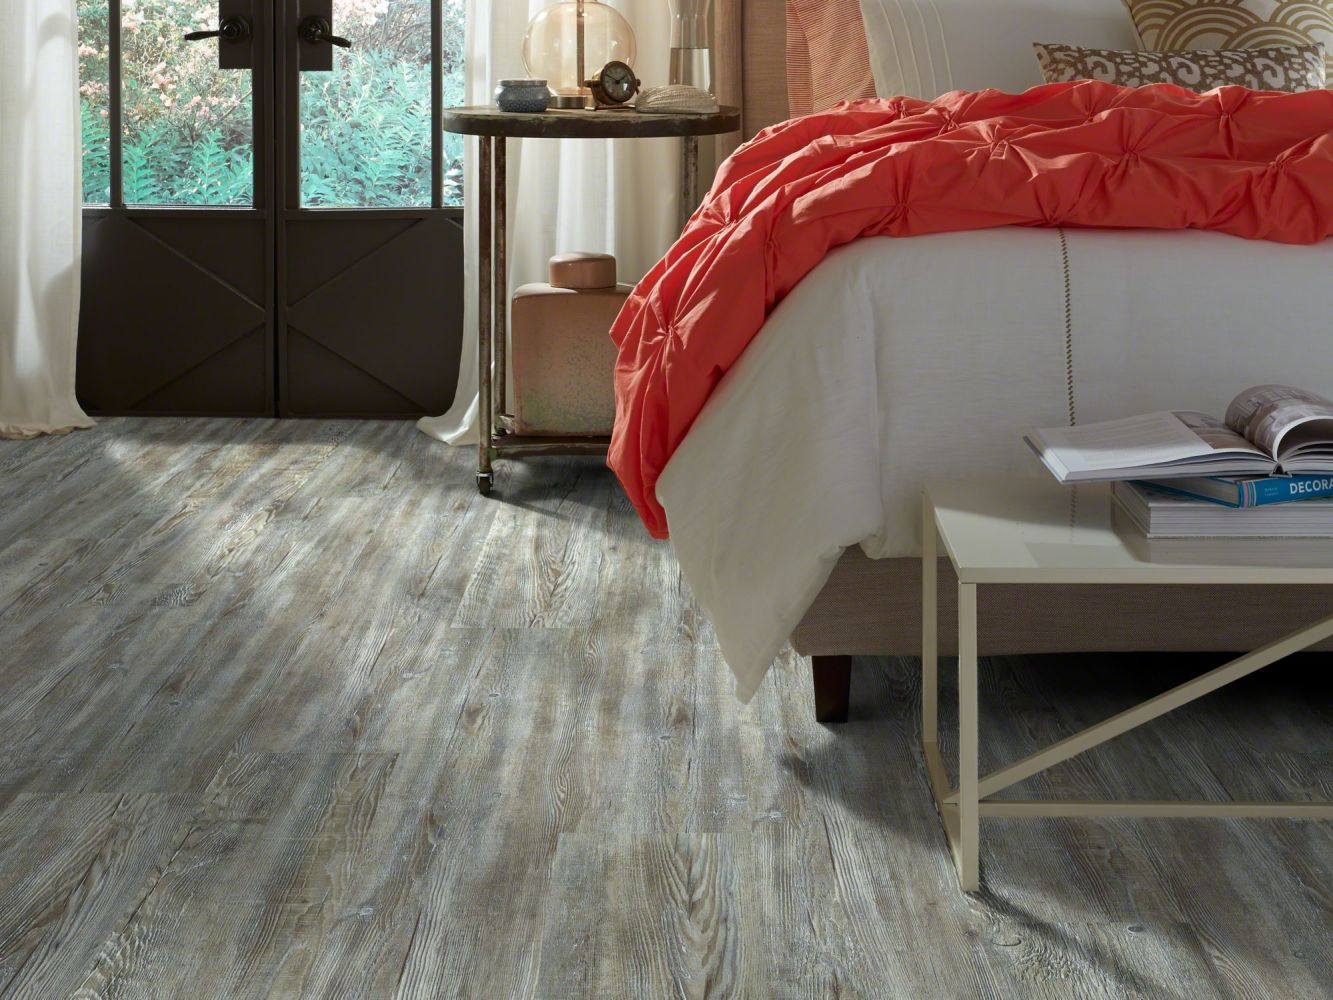 Shaw Floors Resilient Residential Prime Plank Weathered Barnboard 00400_0616V